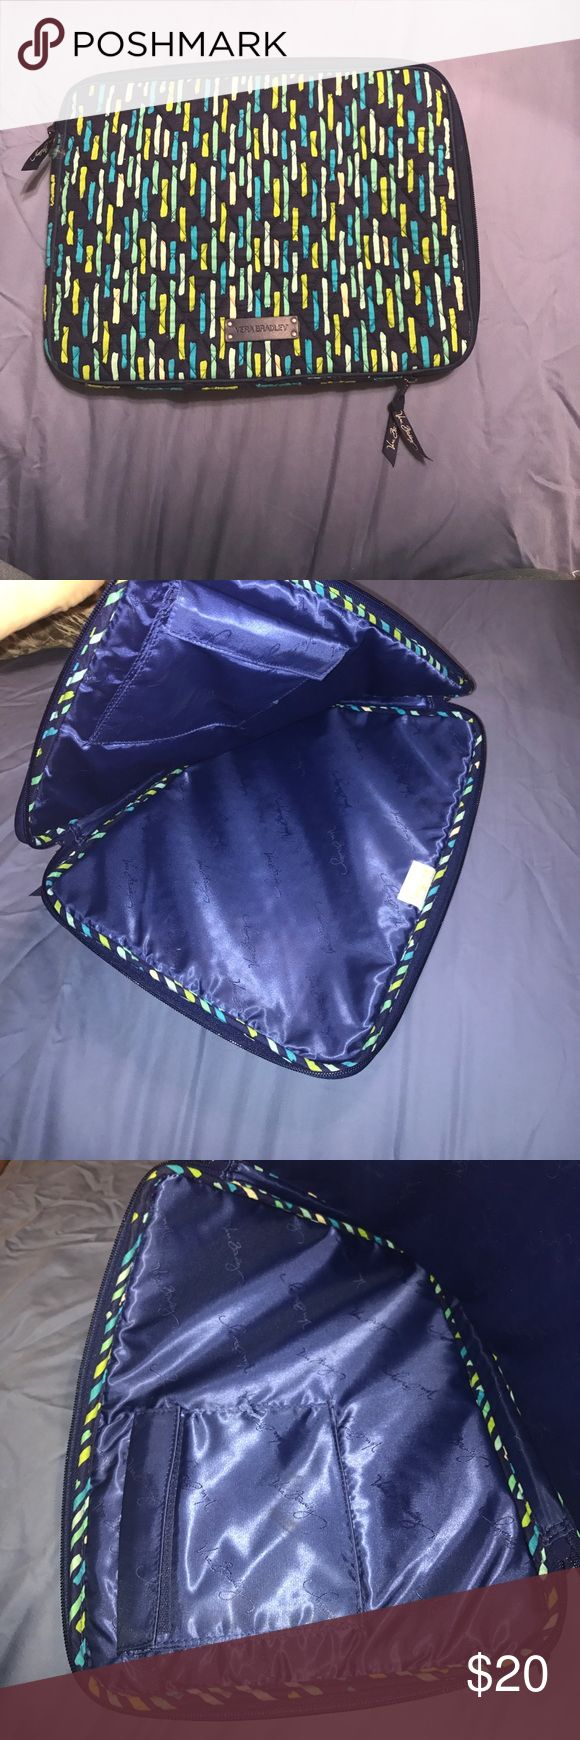 Vera Bradley Laptop Sleeve Blue green Vera Bradley laptop sleeve. Fits a 13in laptop. Has a Velcro pocket on the inside. Only used a few times. Vera Bradley Bags Laptop Bags